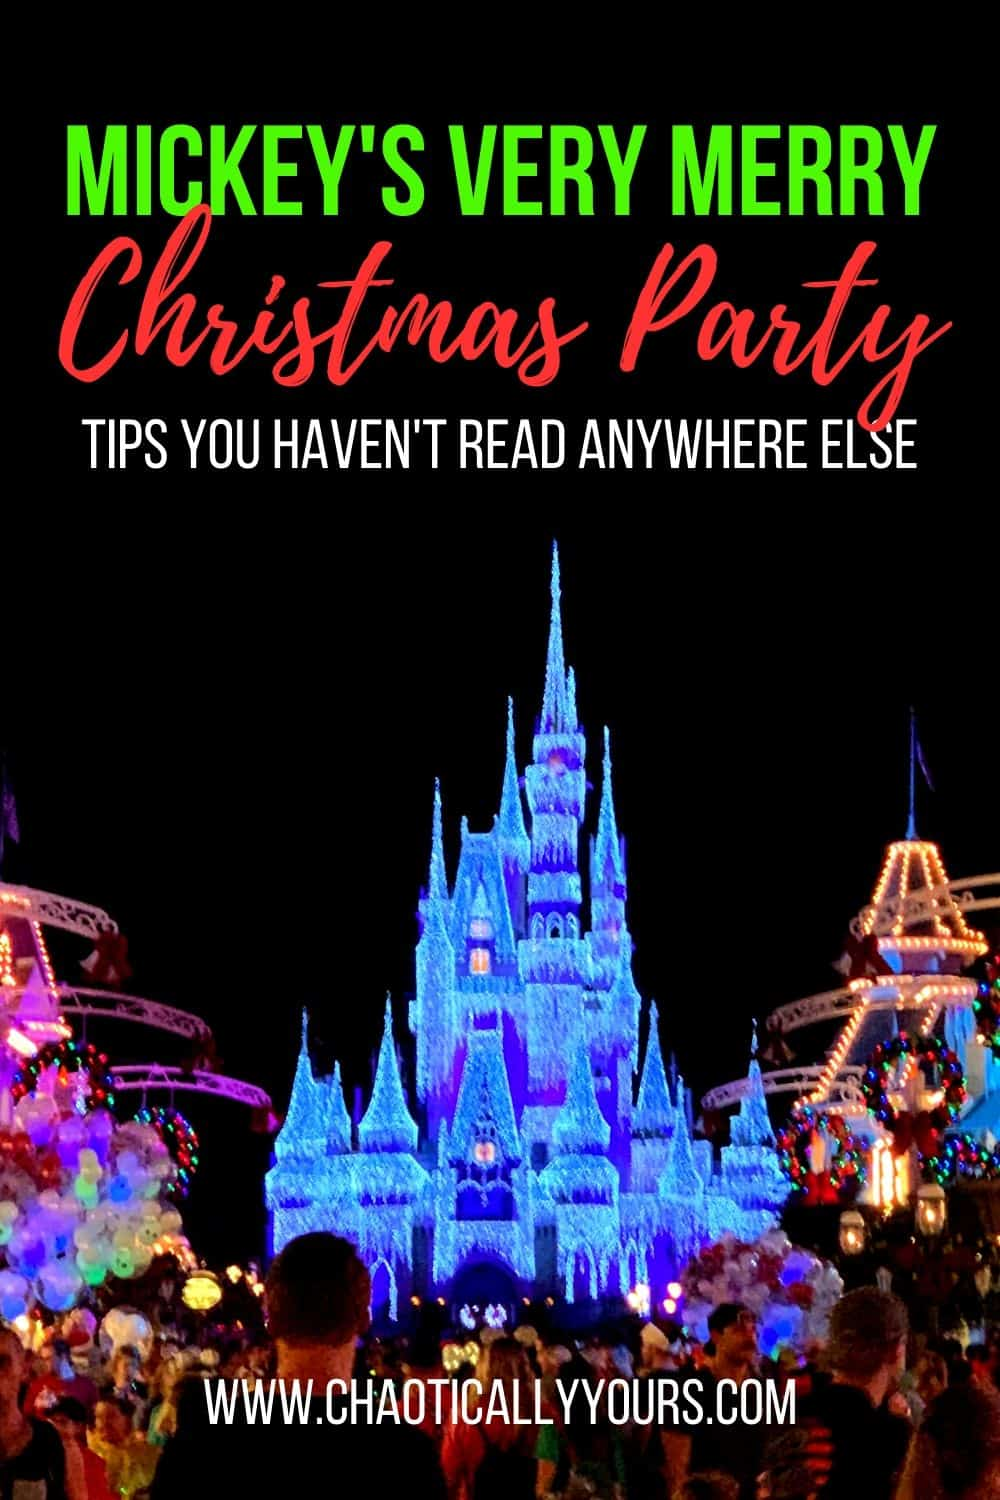 Allergy Friendly Mickeys Very Merry Christmas Party 2021 Mickey S Very Merry Christmas Party Tips You Haven T Heard Anywhere Else Chaotically Yours